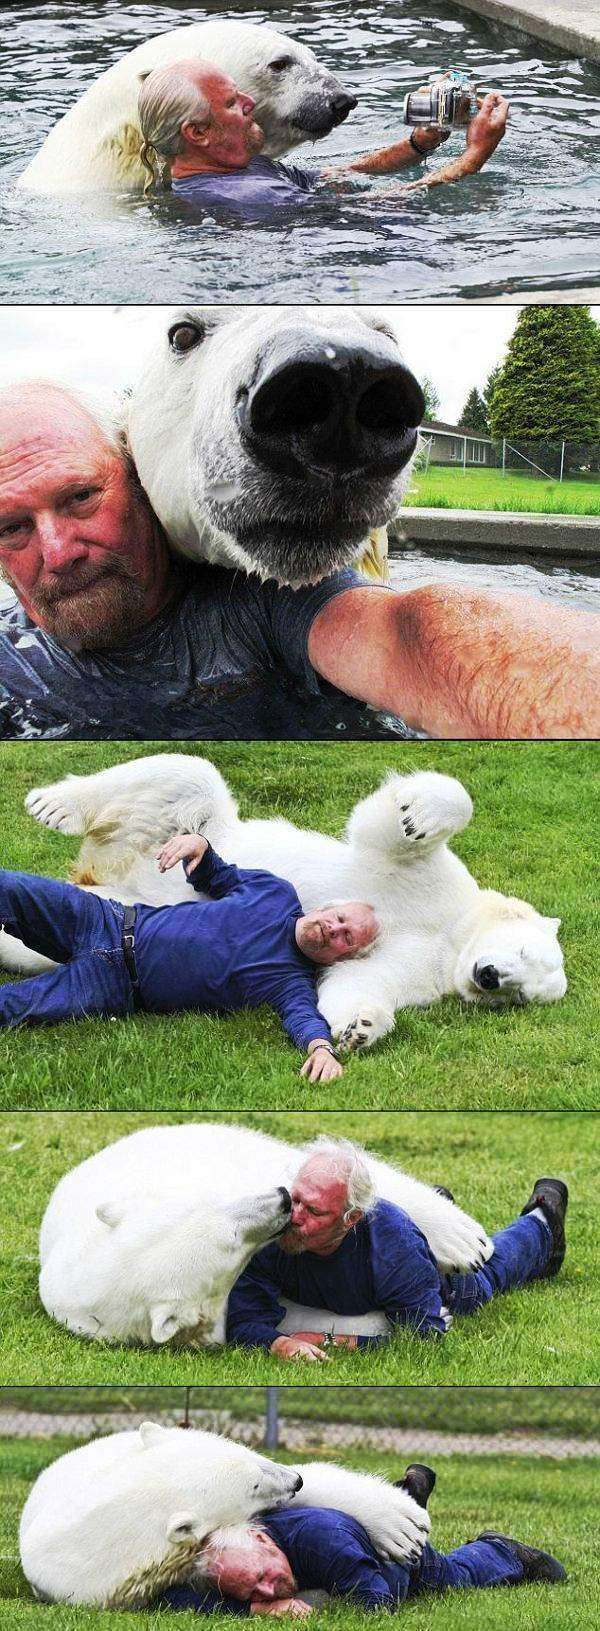 The Benefits Of Being A Polar Bear Zookeeper